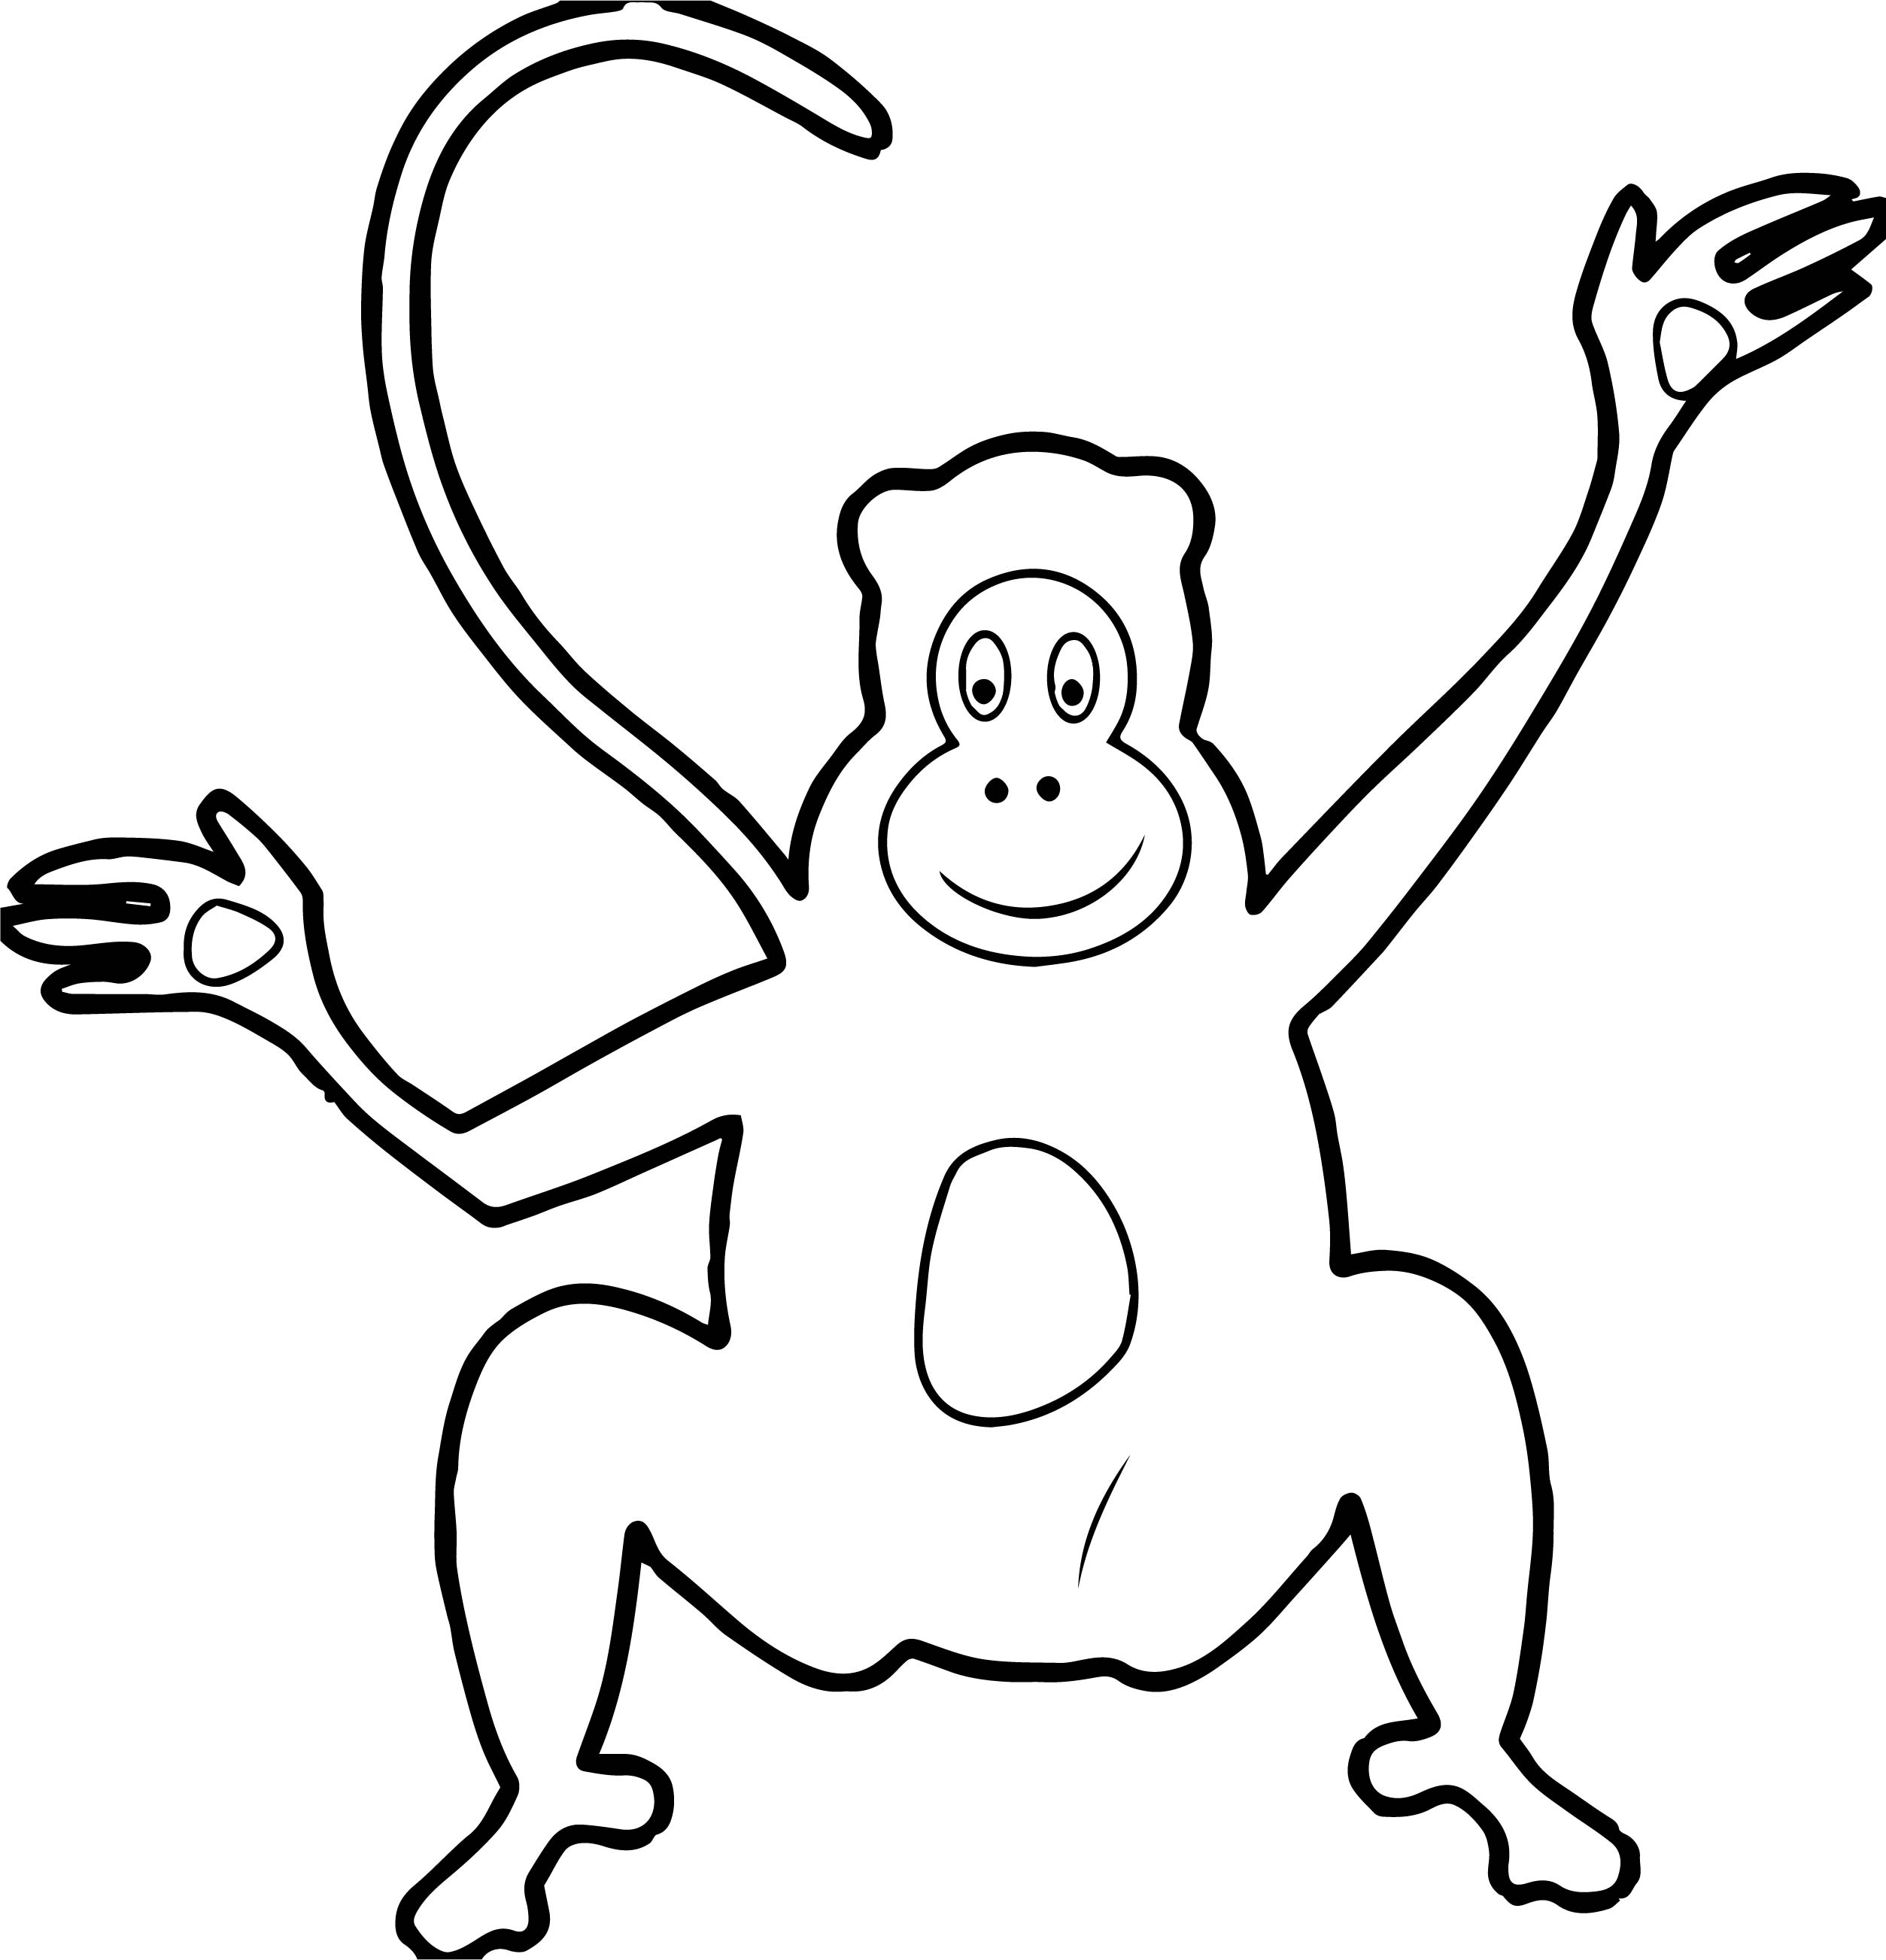 Baby Monkey Cartoon Ape Baboon Wild Funny Cute Coloring Page